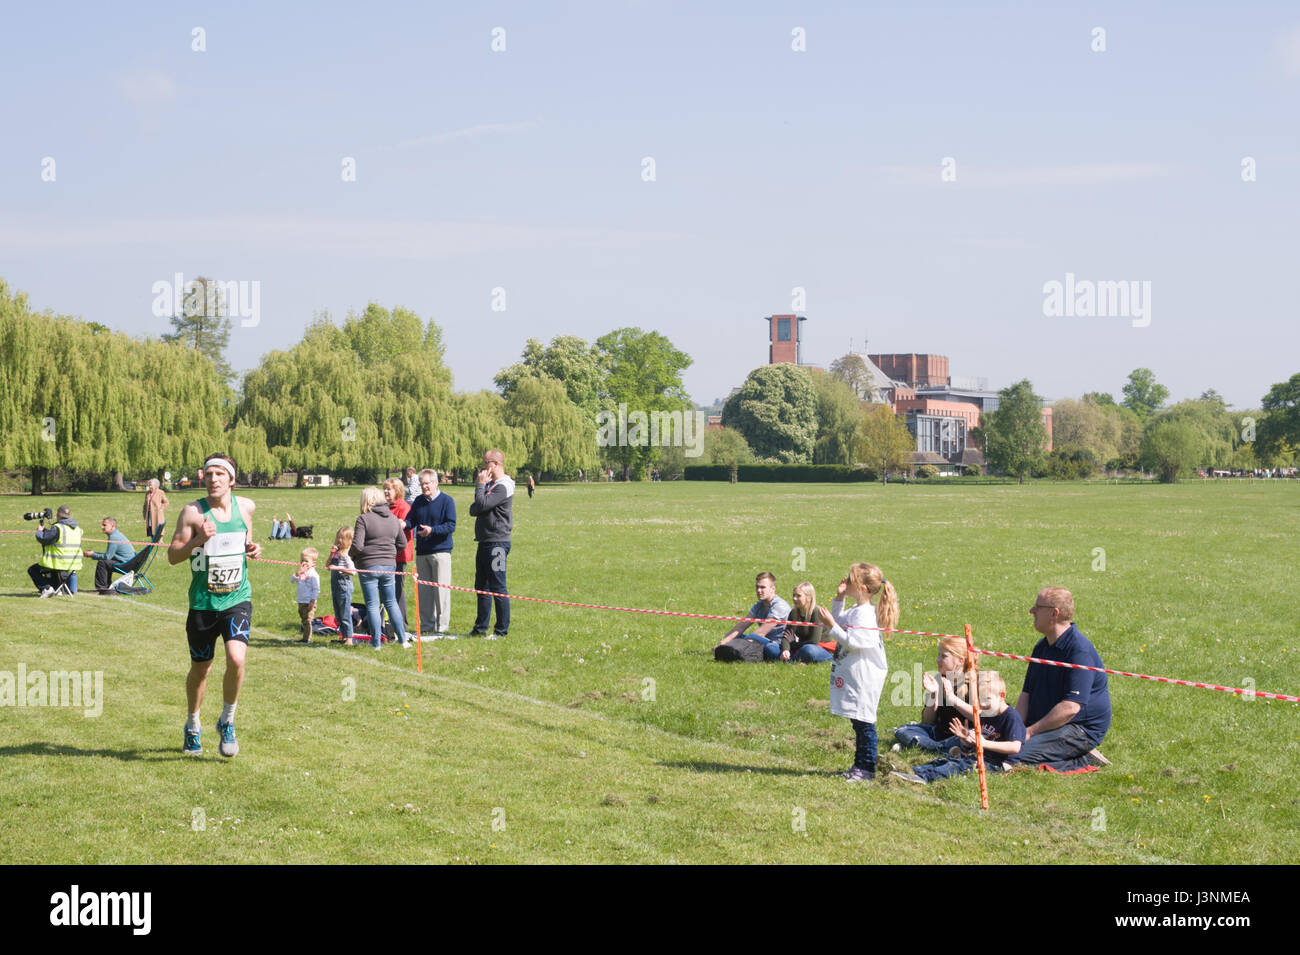 Stratford-upon-Avon, Warwickshire, UK. 7th May, 2017. A runner passing through the recreation ground with the RSC - Stock Image